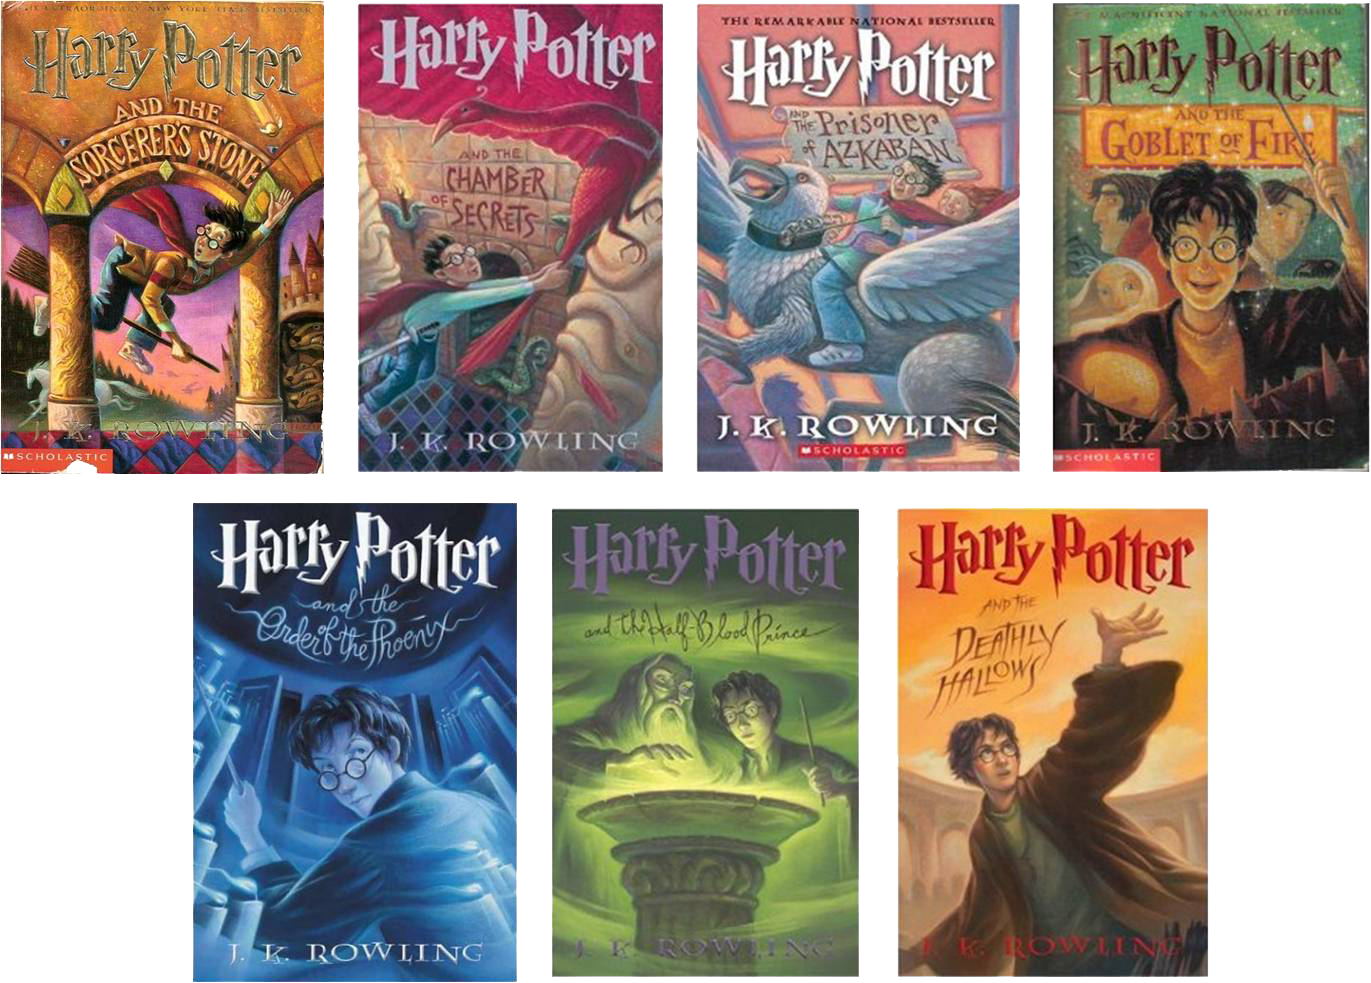 Comprar Libros De Harry Potter Harry Potter